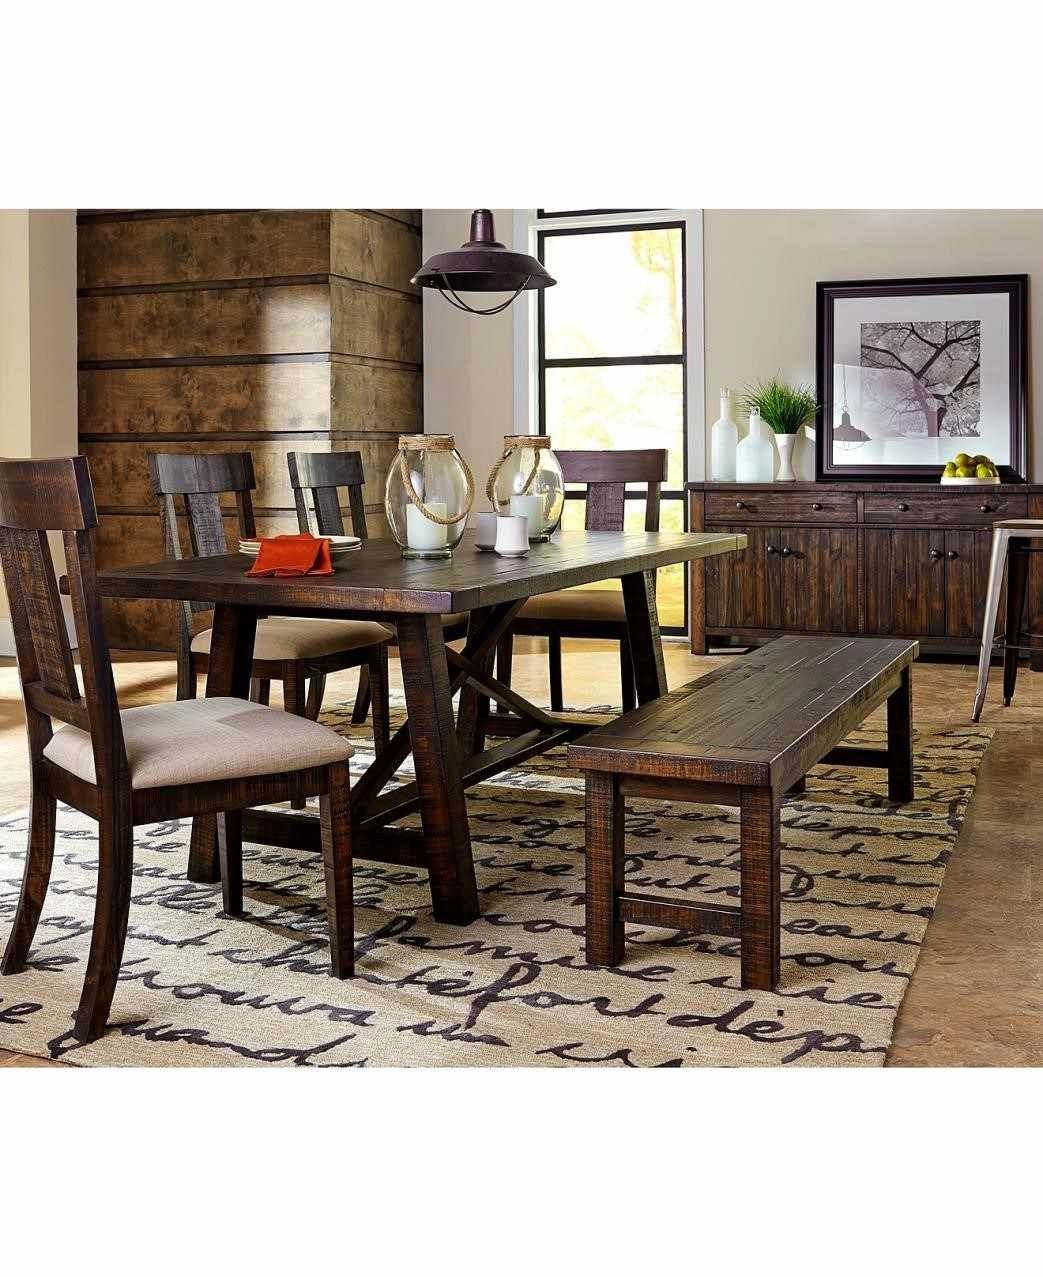 Dining Room Pads For Table Macys Dining Room Table Pads  Httpfmufpi  Pinterest